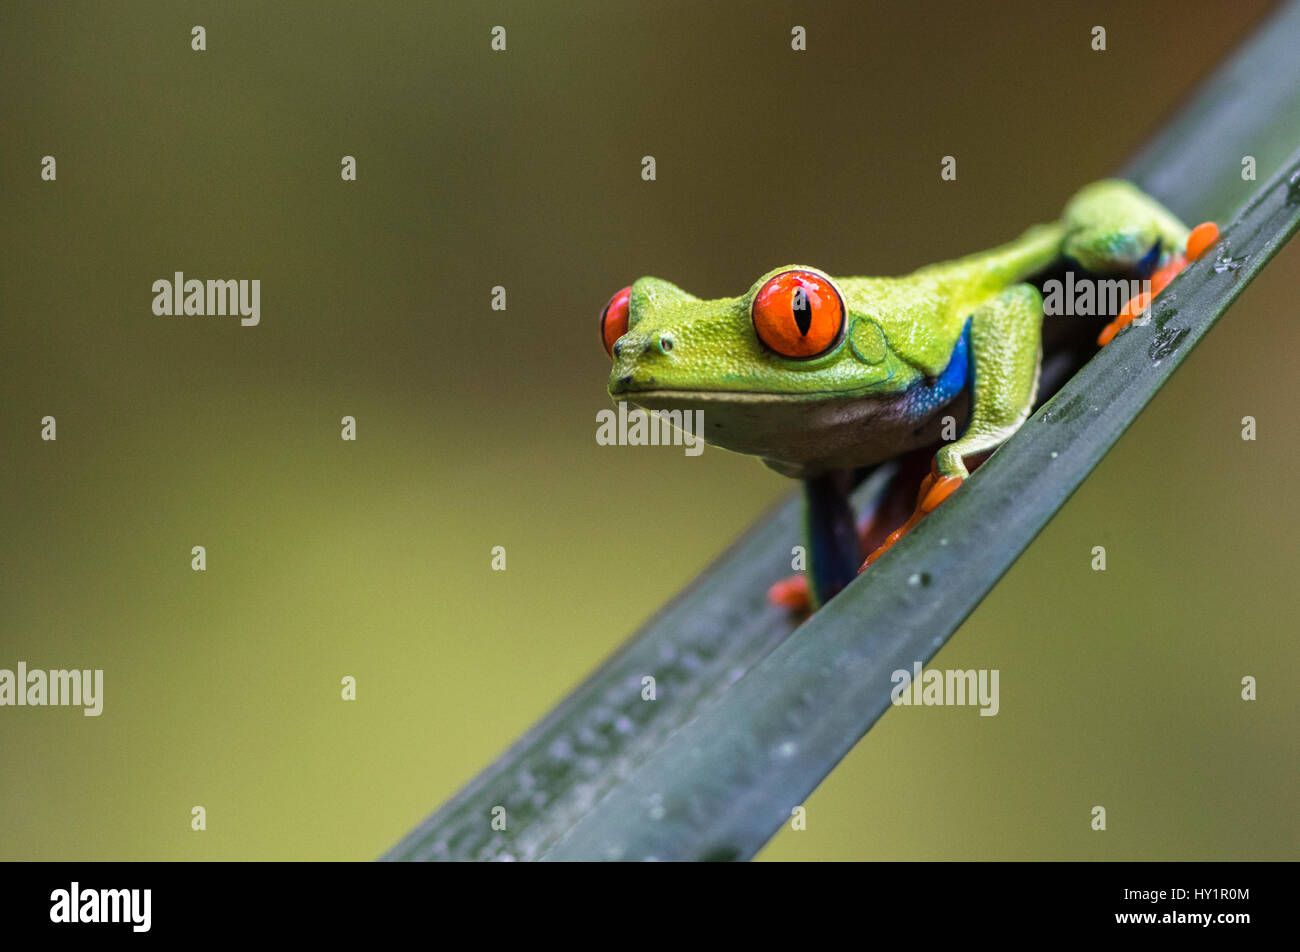 Red-eyed tree frog, Agalychnis callidryas, climbing on a leaf, looking in to the camera, Laguna del Lagarto, Boca - Stock Image